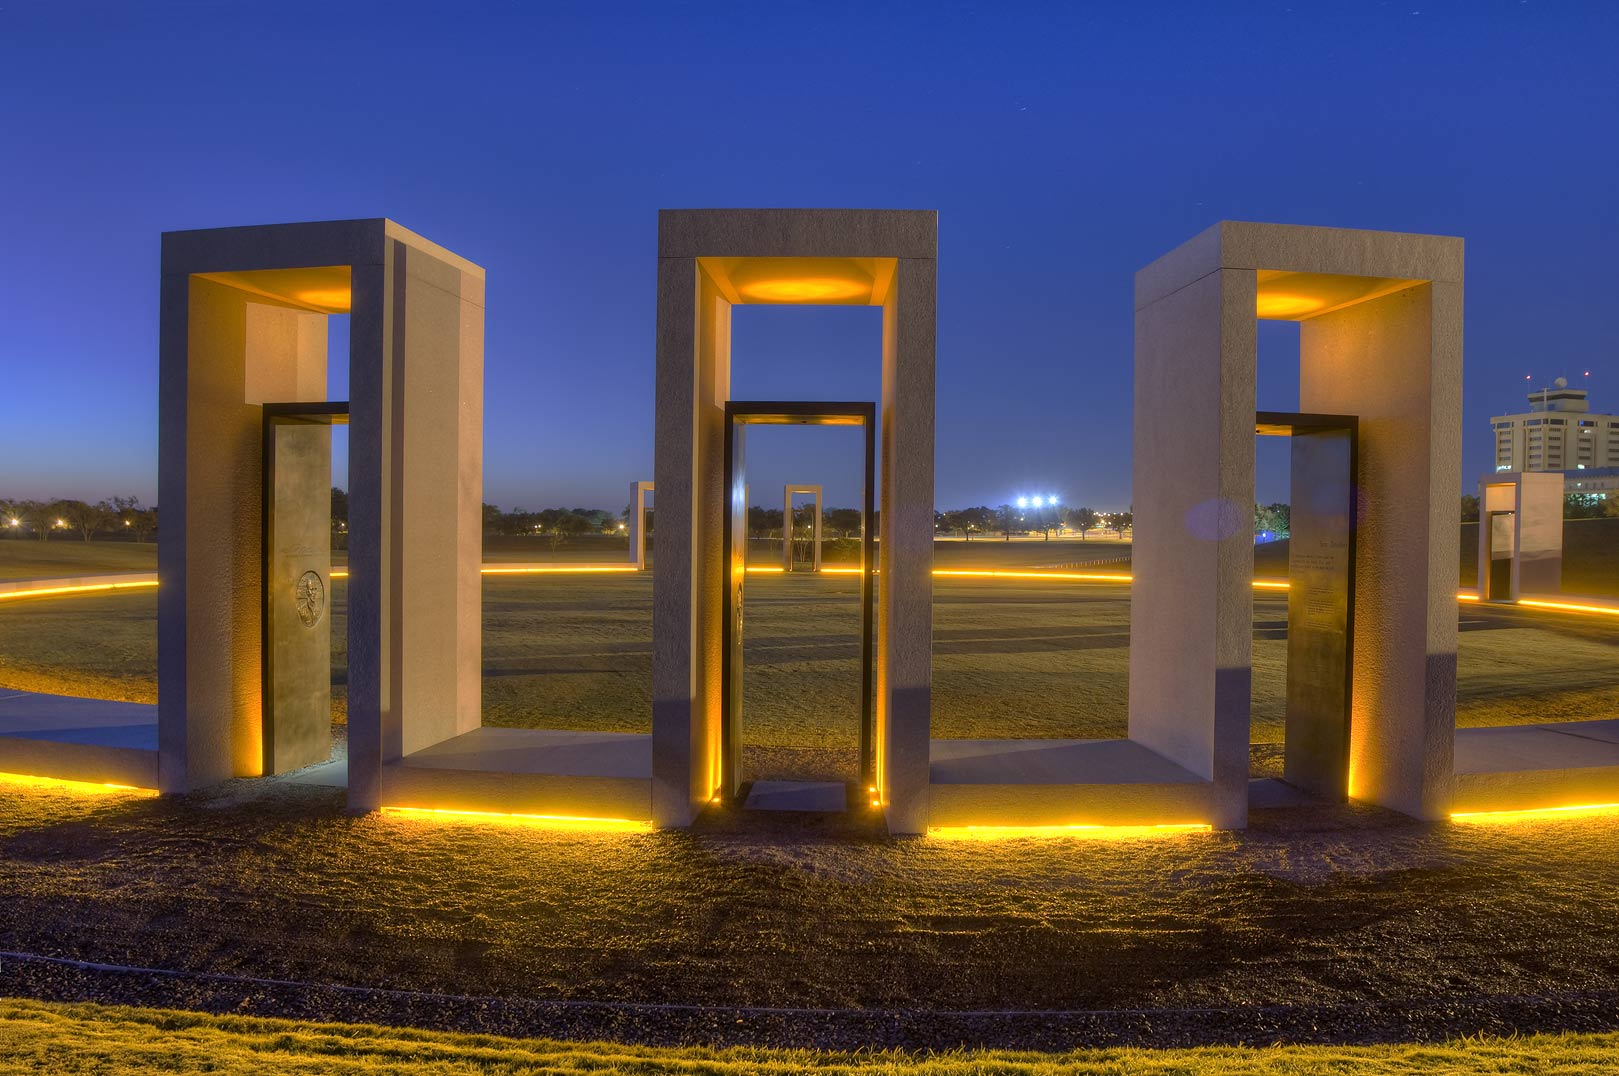 Bonfire Memorial on campus of Texas A&M University. College Station, Texas